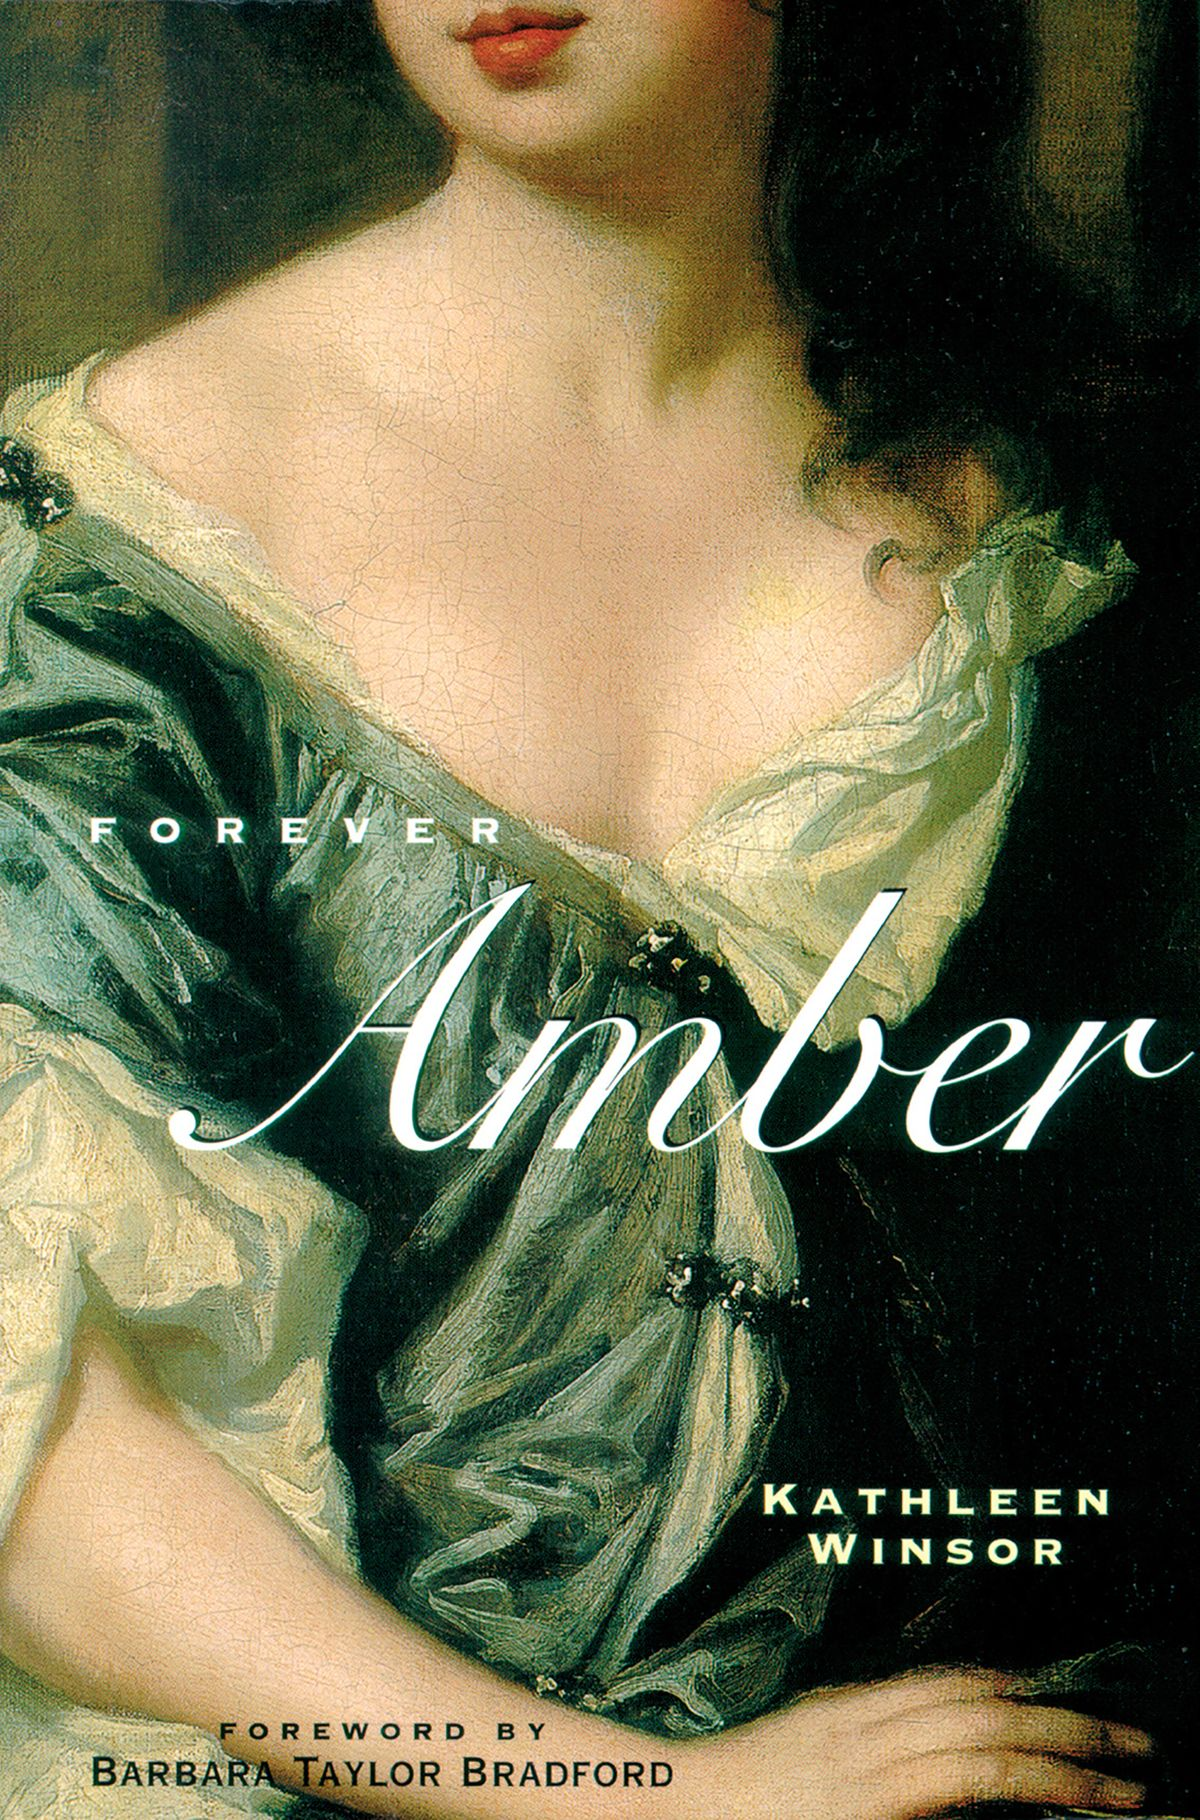 Forever Amber, by Kathleen Winsor (1944